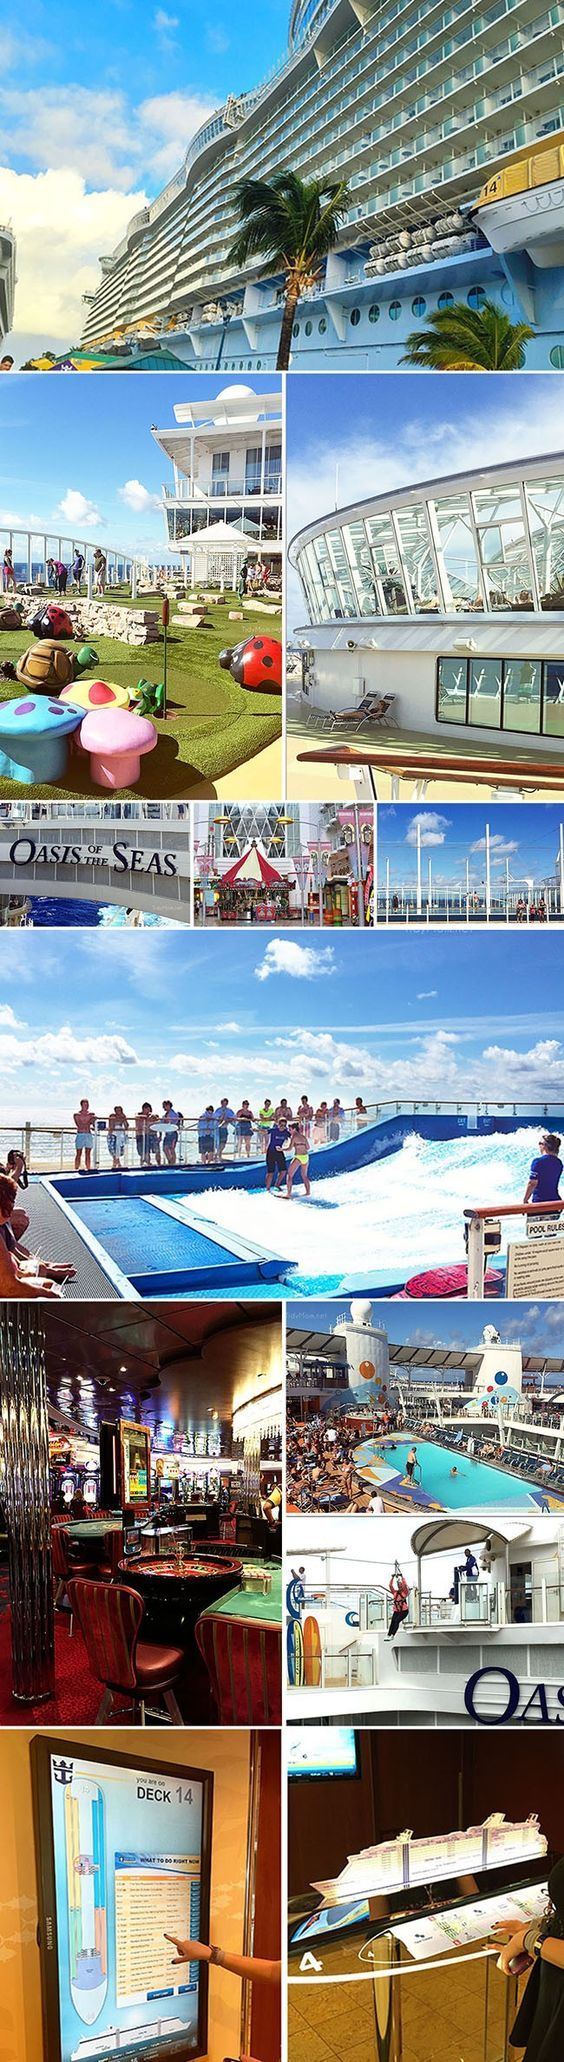 Royal Caribbean Oasis of the Seas cruise ship details and cruising tips at TidyMom.net - some really great tips for cruising here!!